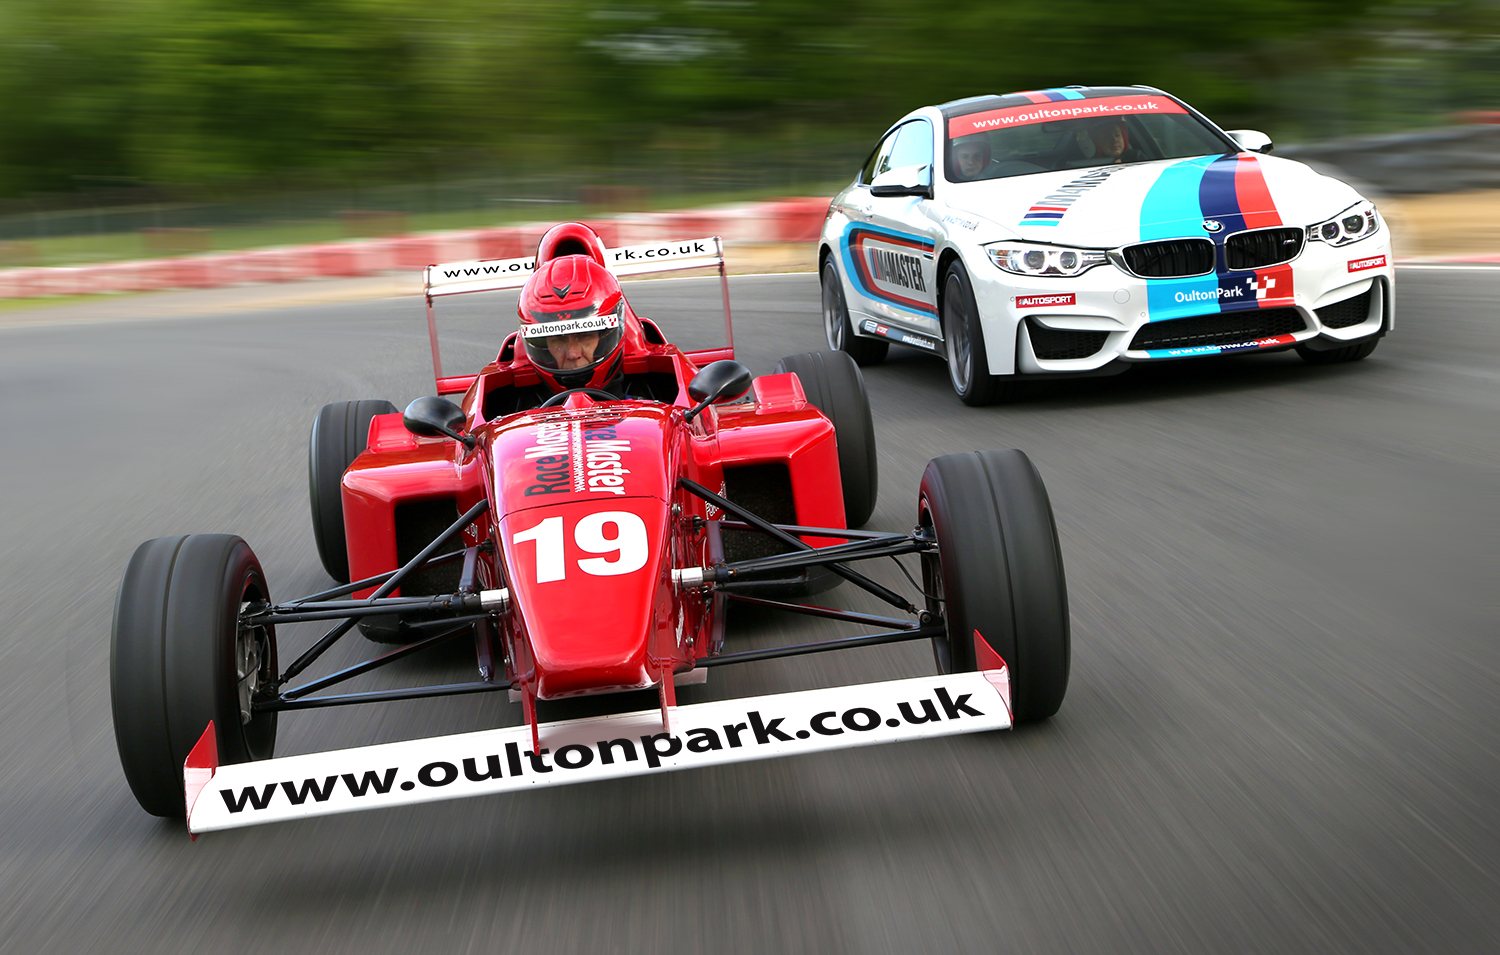 track day driving experience Oulton Park